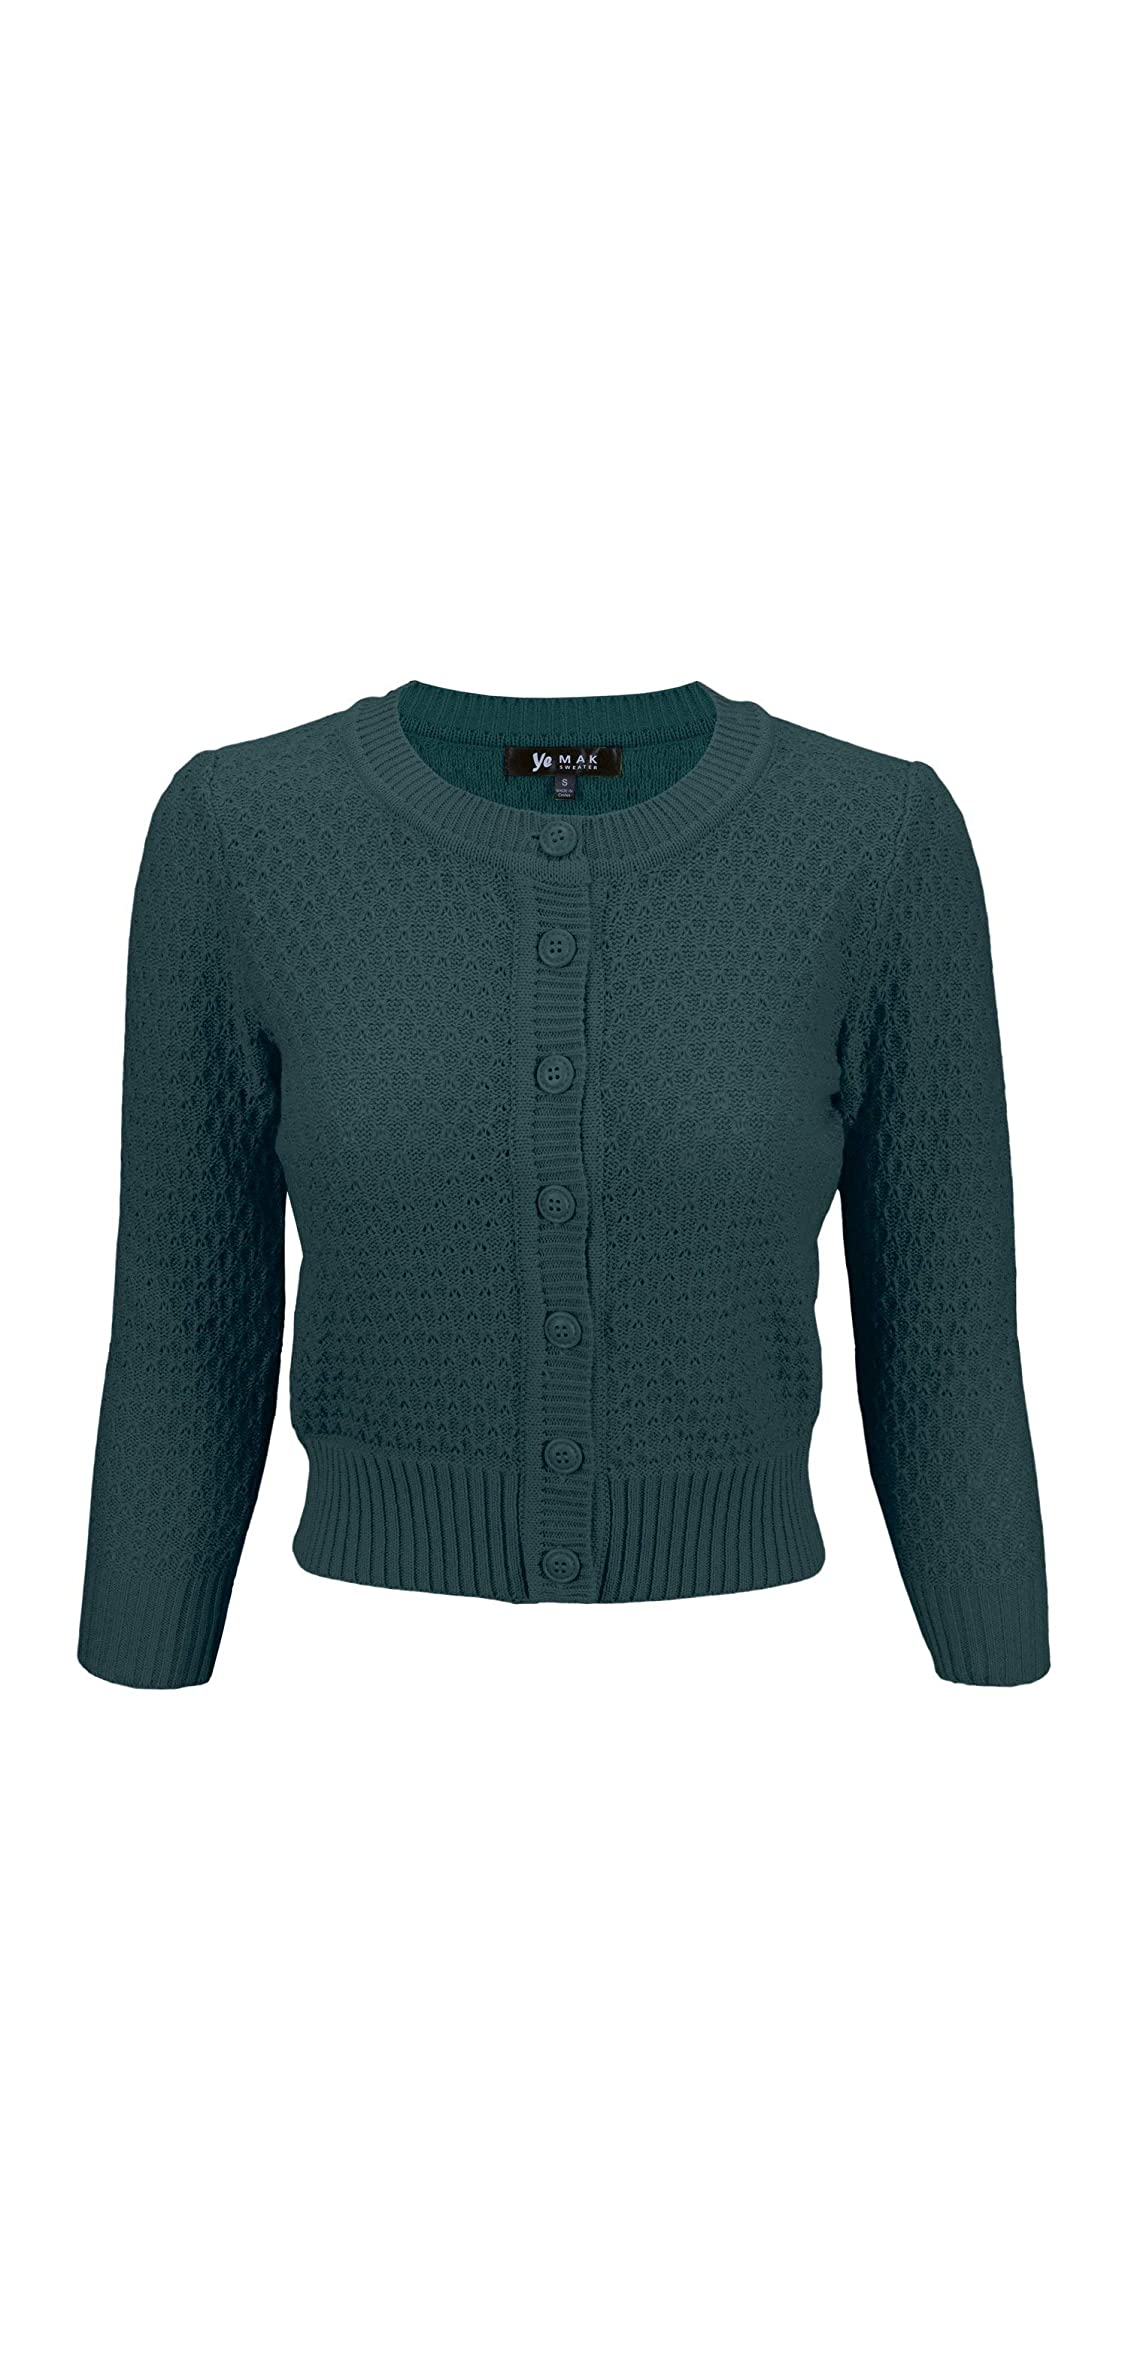 Women's / Sleeve Crewneck Cropped Button Down Knit